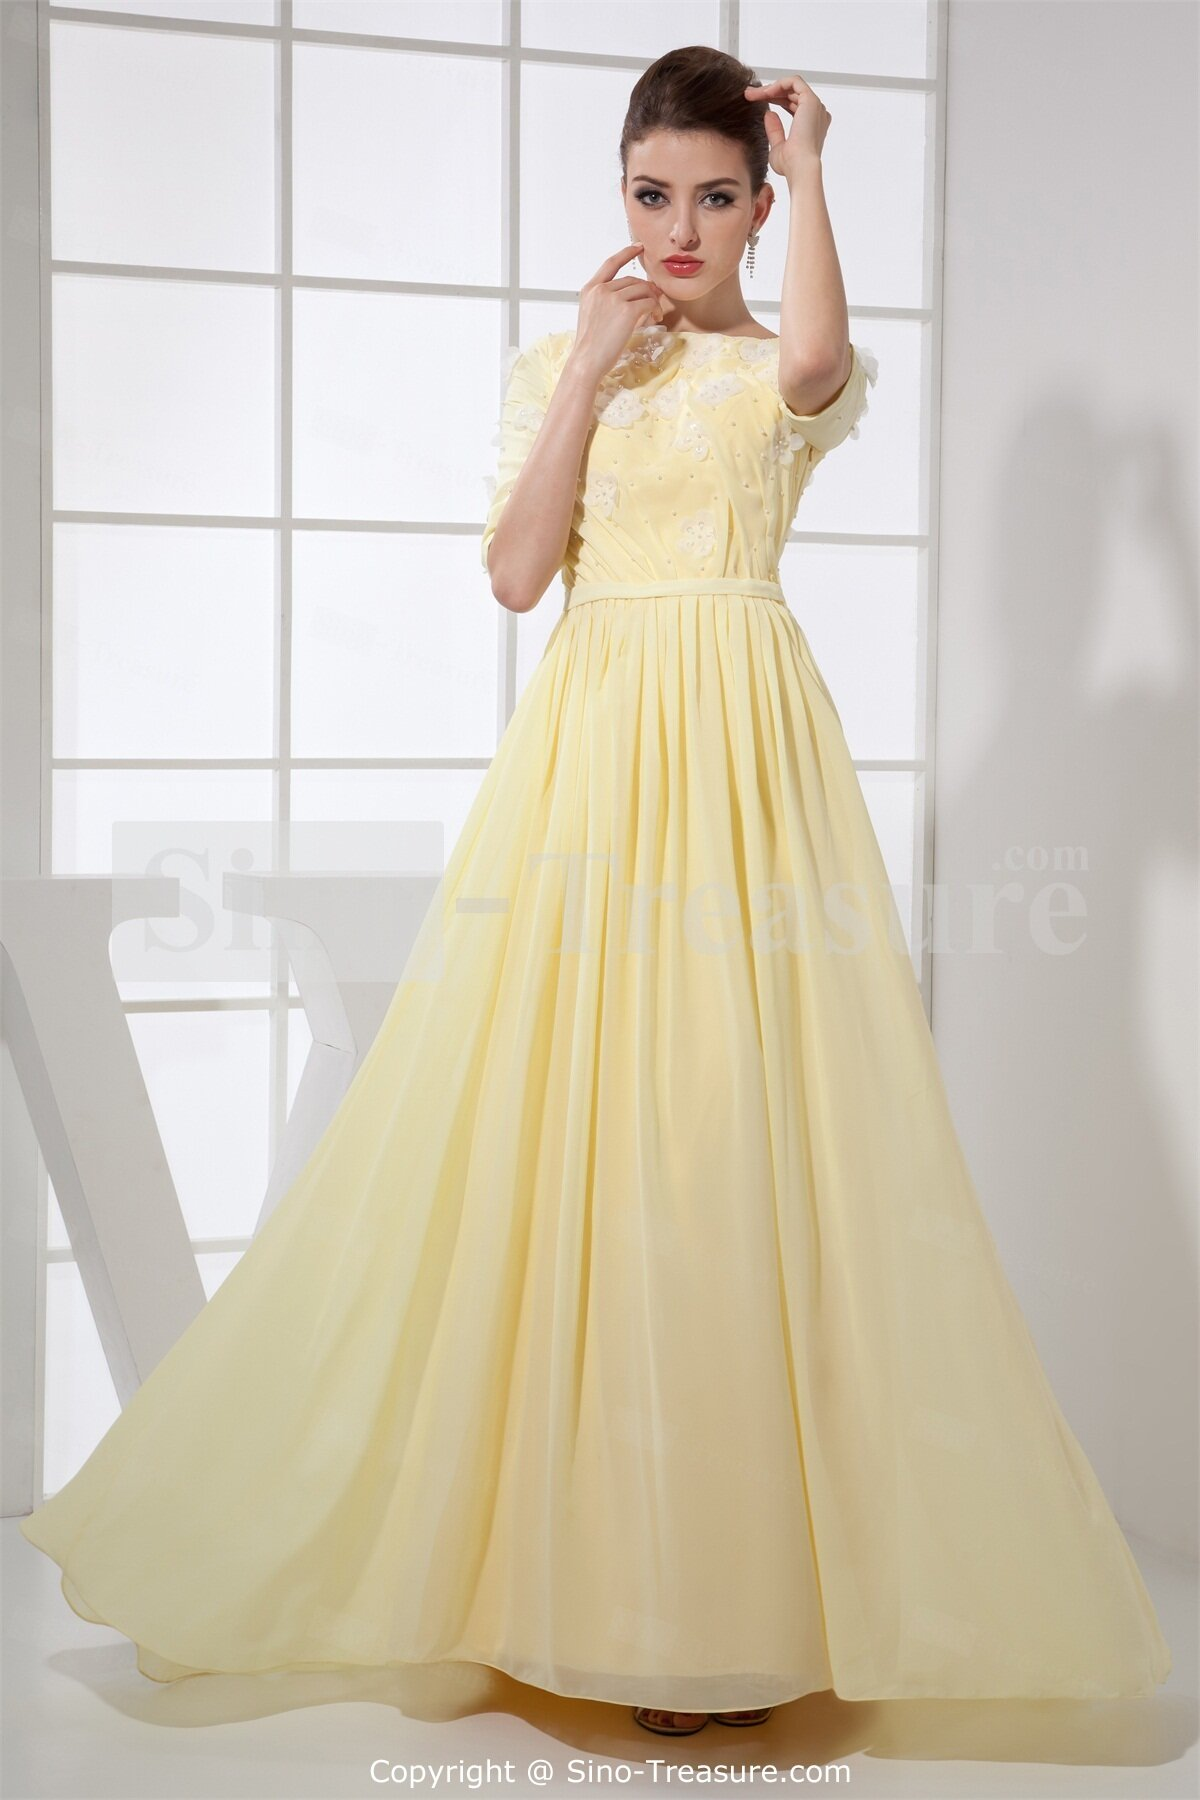 Pale Yellow Dresses for Women _Other dresses_dressesss